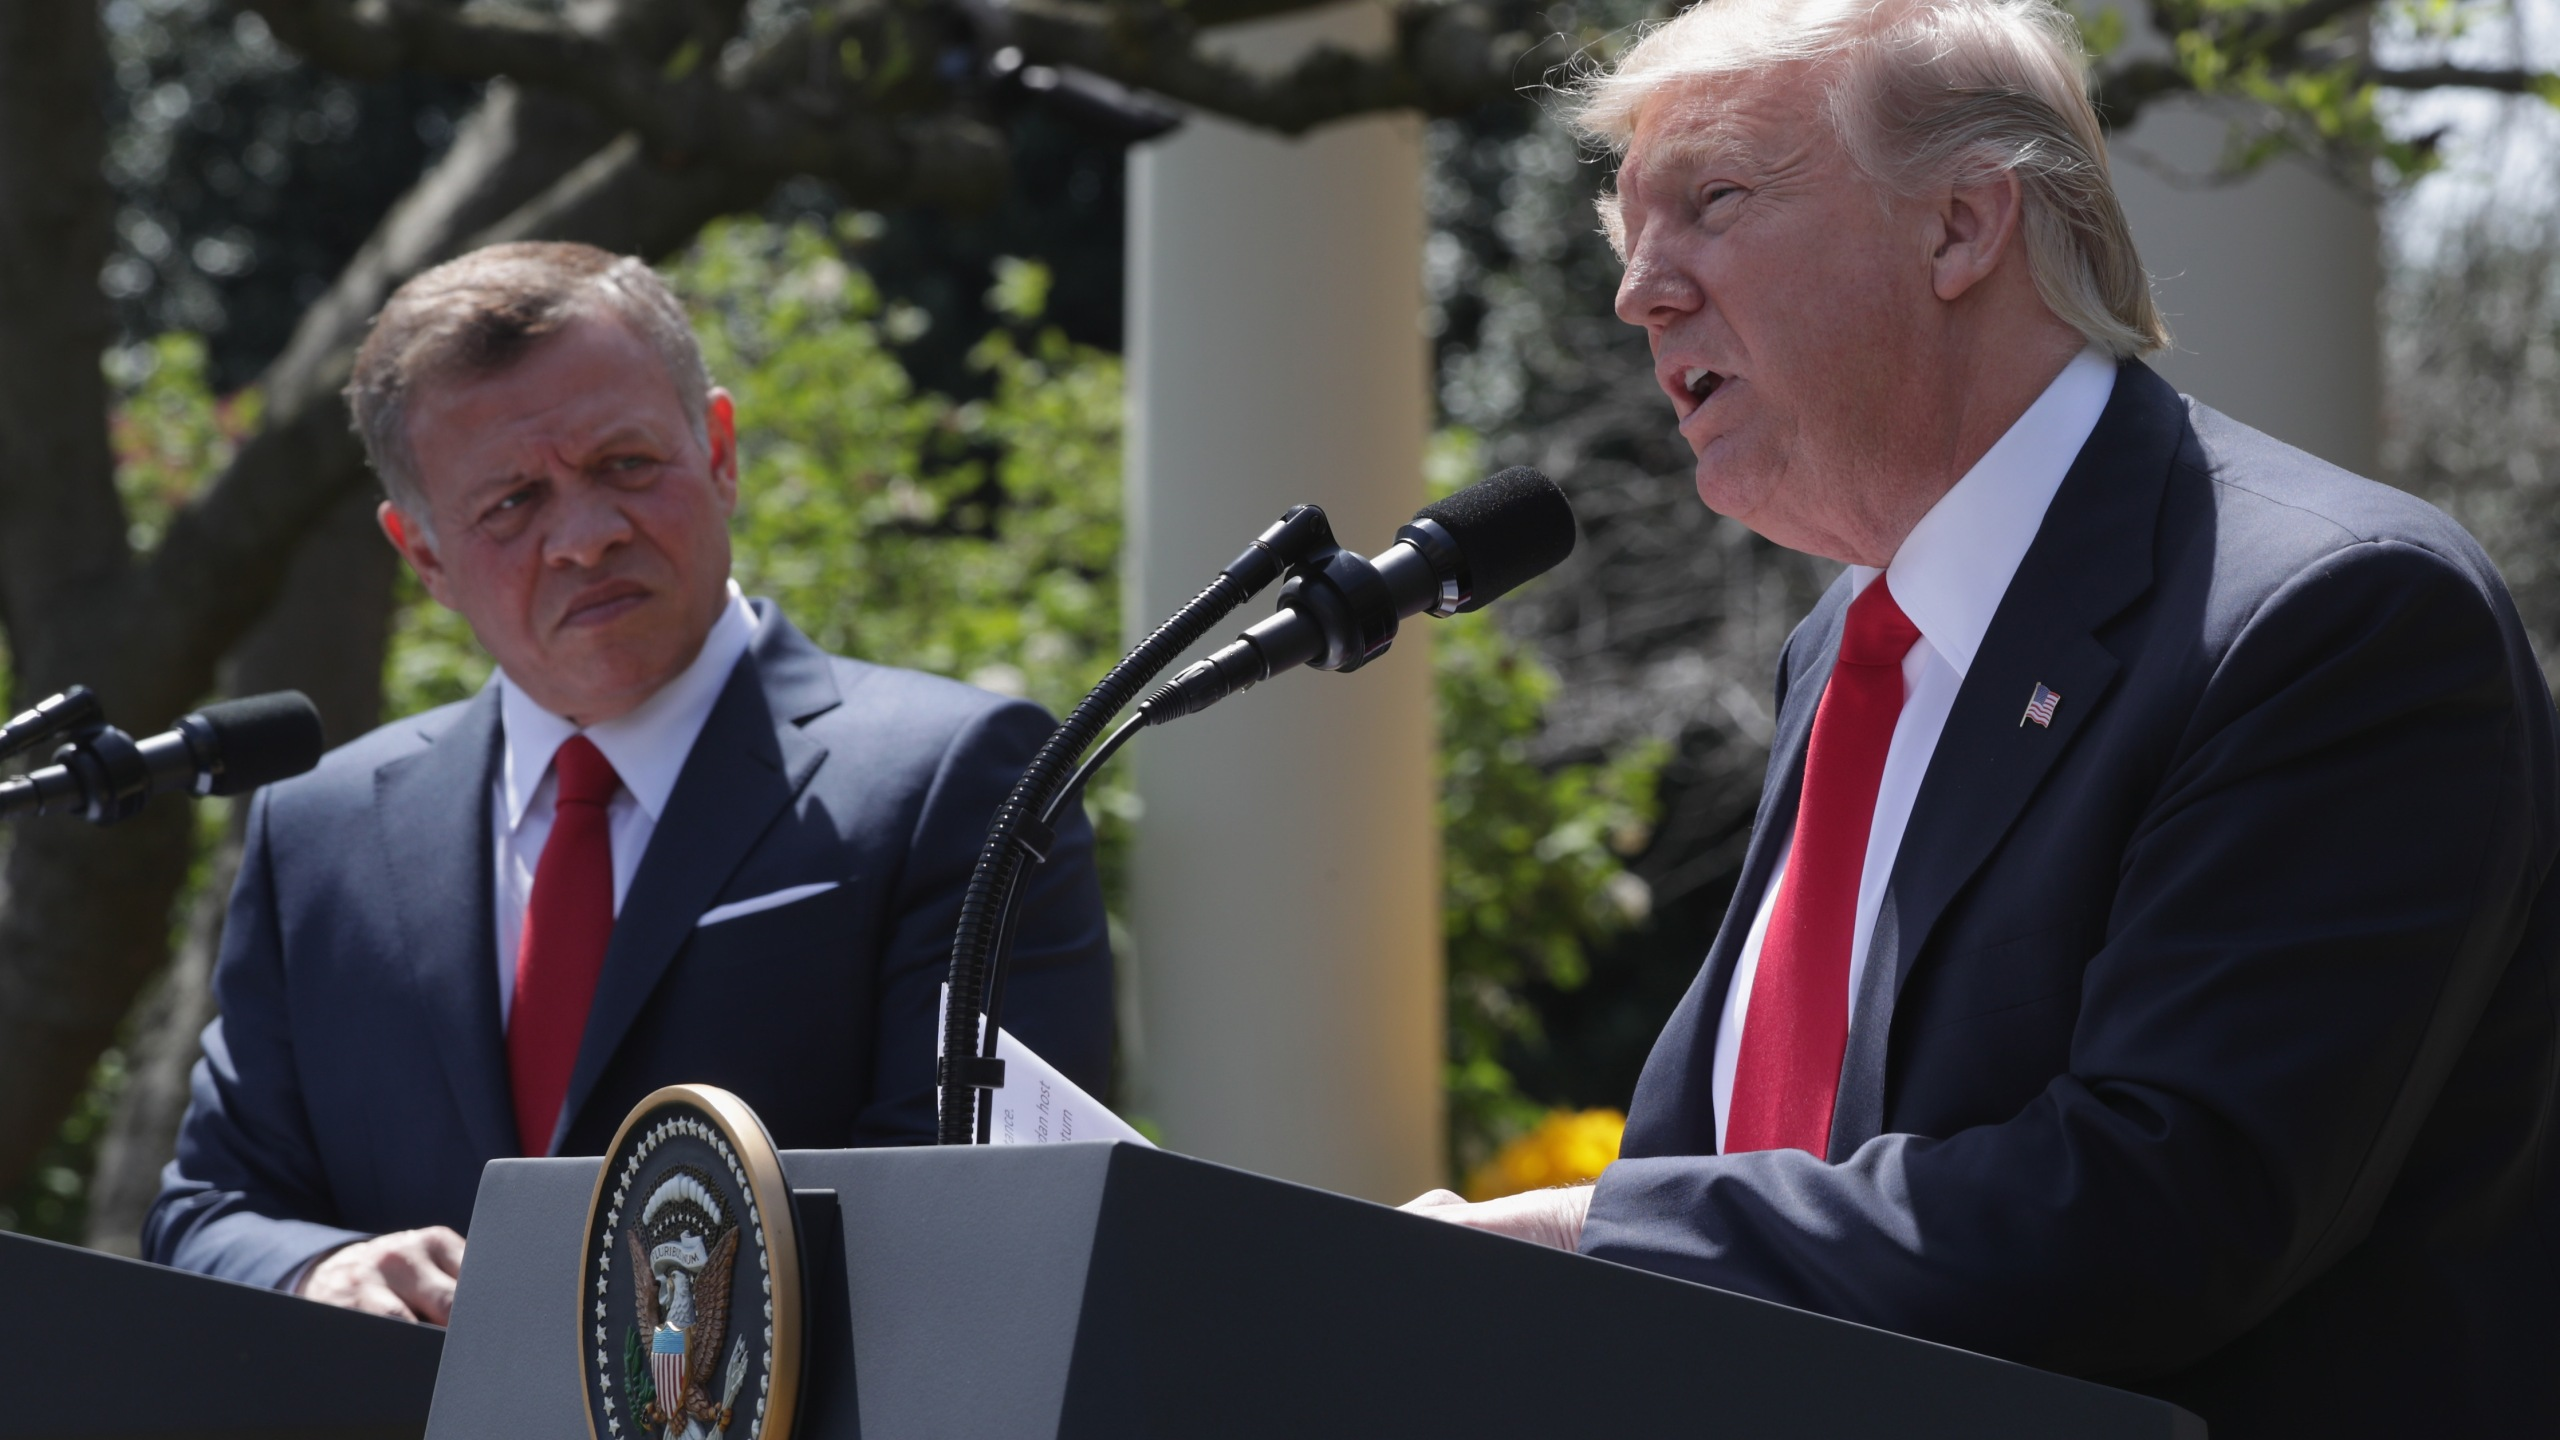 U.S. President Donald Trump and King Abdullah II of Jordan participate in a joint news conference at the Rose Garden of the White House April 5, 2017, in Washington, D.C. (Credit: Alex Wong/Getty Images)